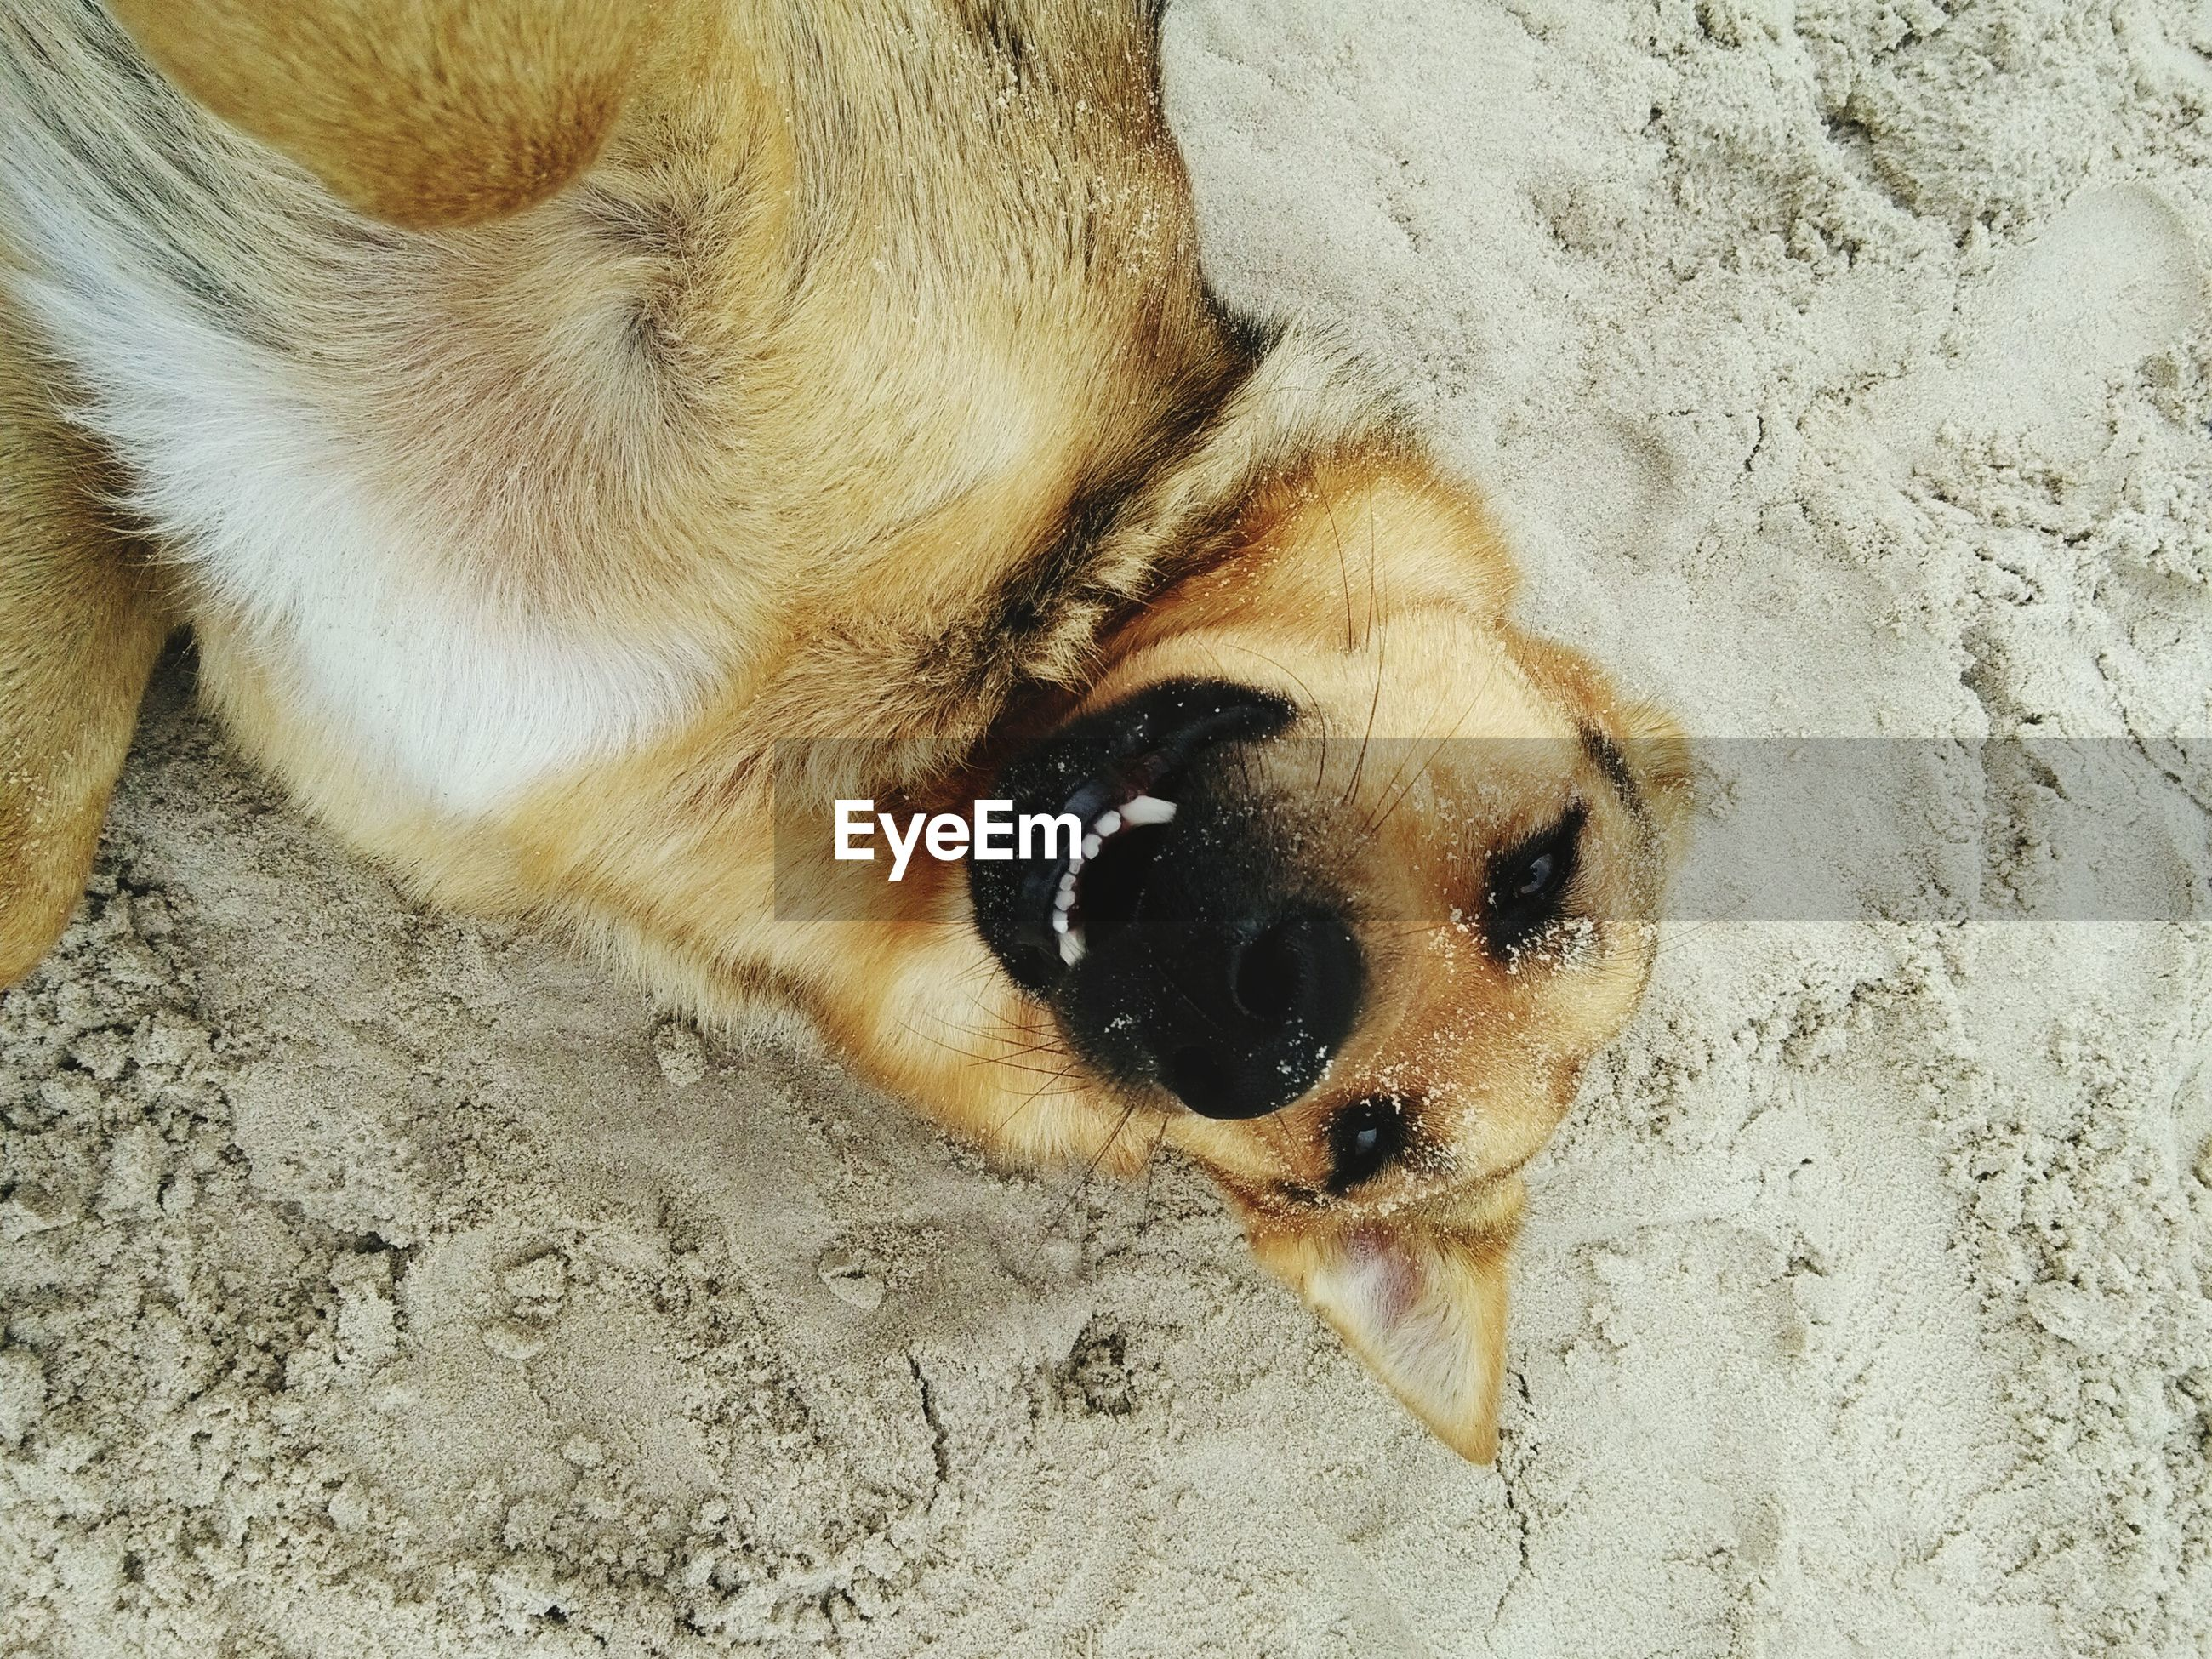 close-up, animal themes, one animal, high angle view, no people, animals in the wild, sand, textured, day, outdoors, nature, sea life, undersea